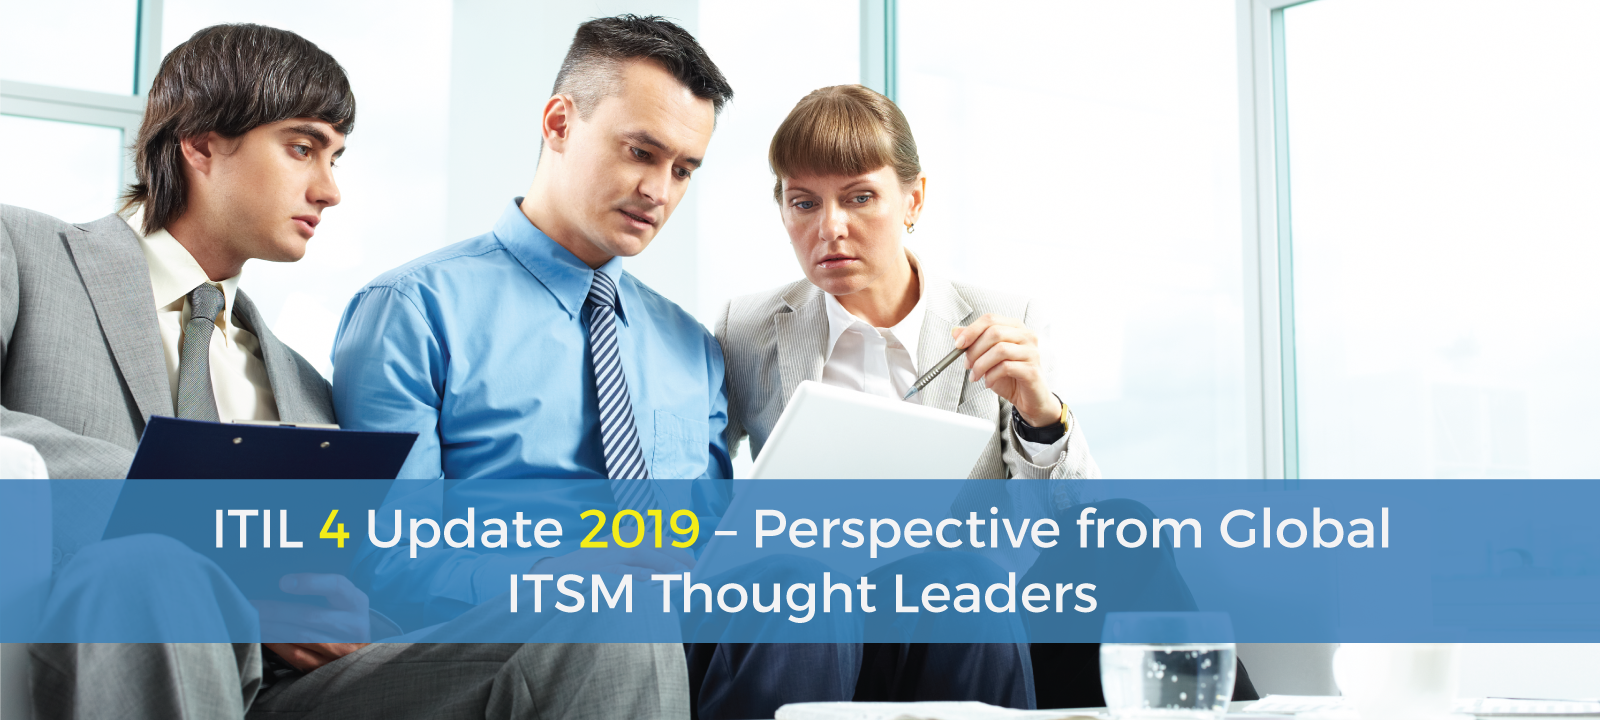 ITIL 4 Update 2019 – Perspective from Global ITSM Thought Leaders